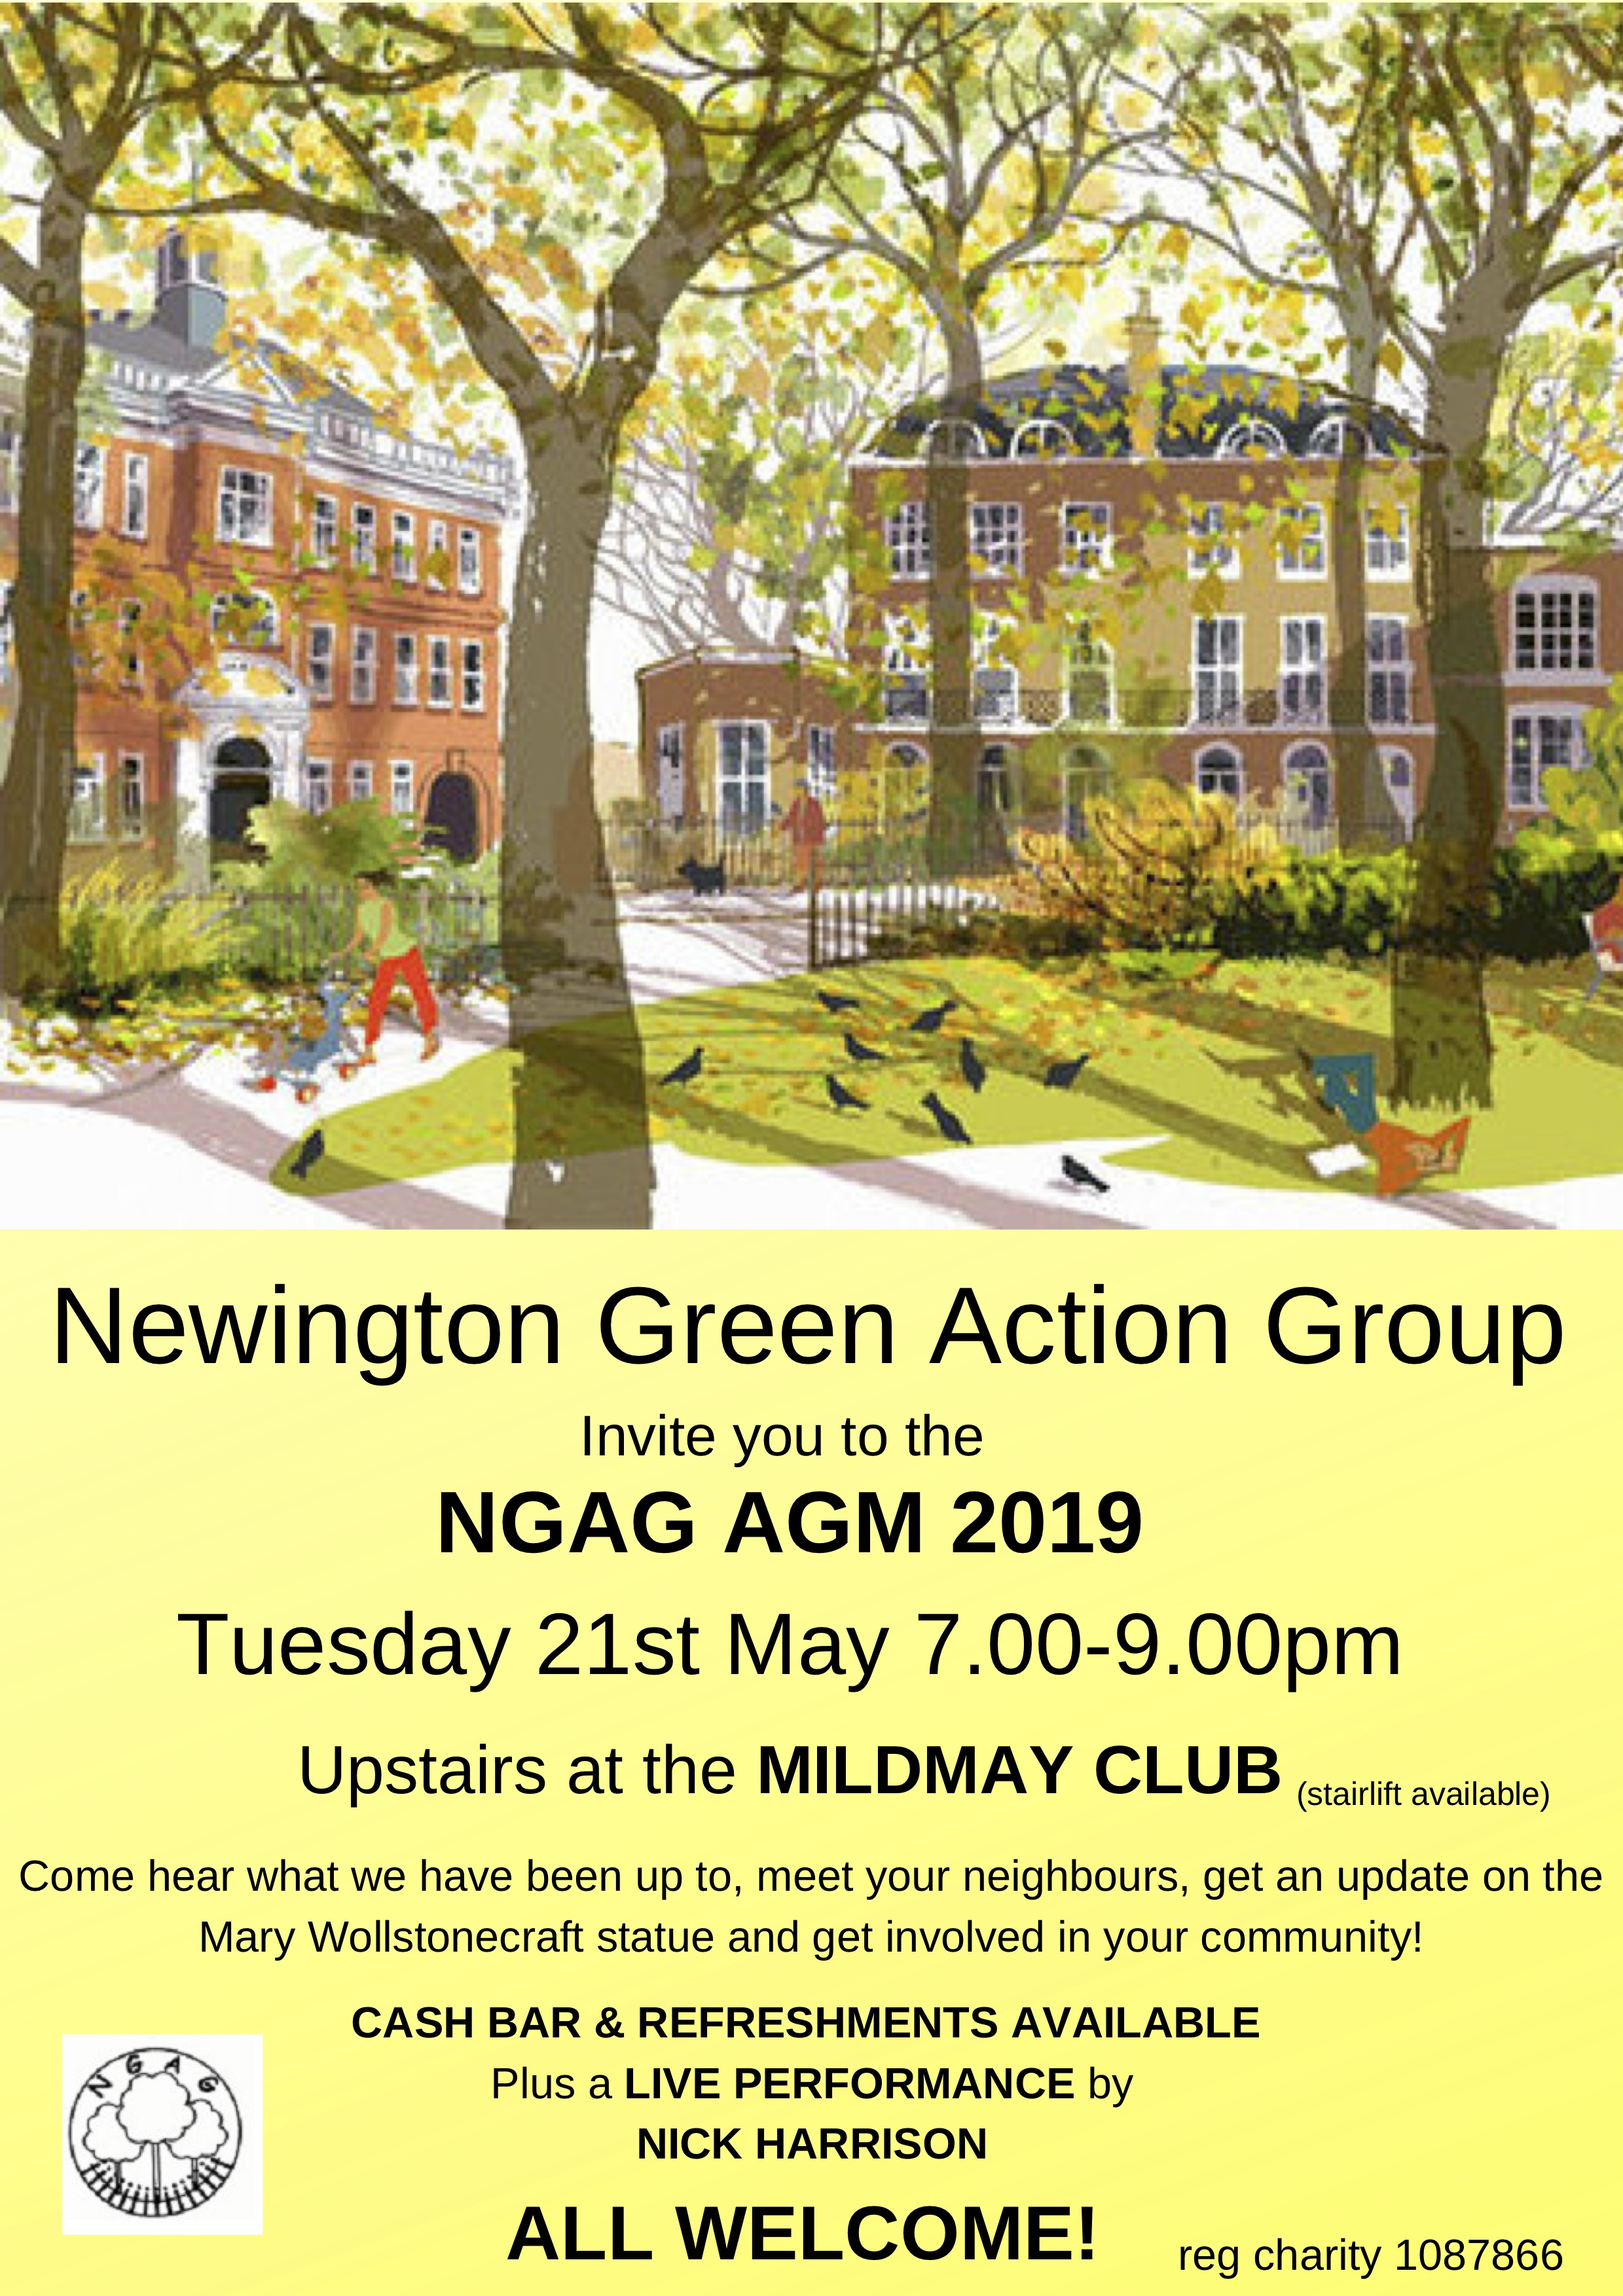 The Newington Green Action Group (1).jpg